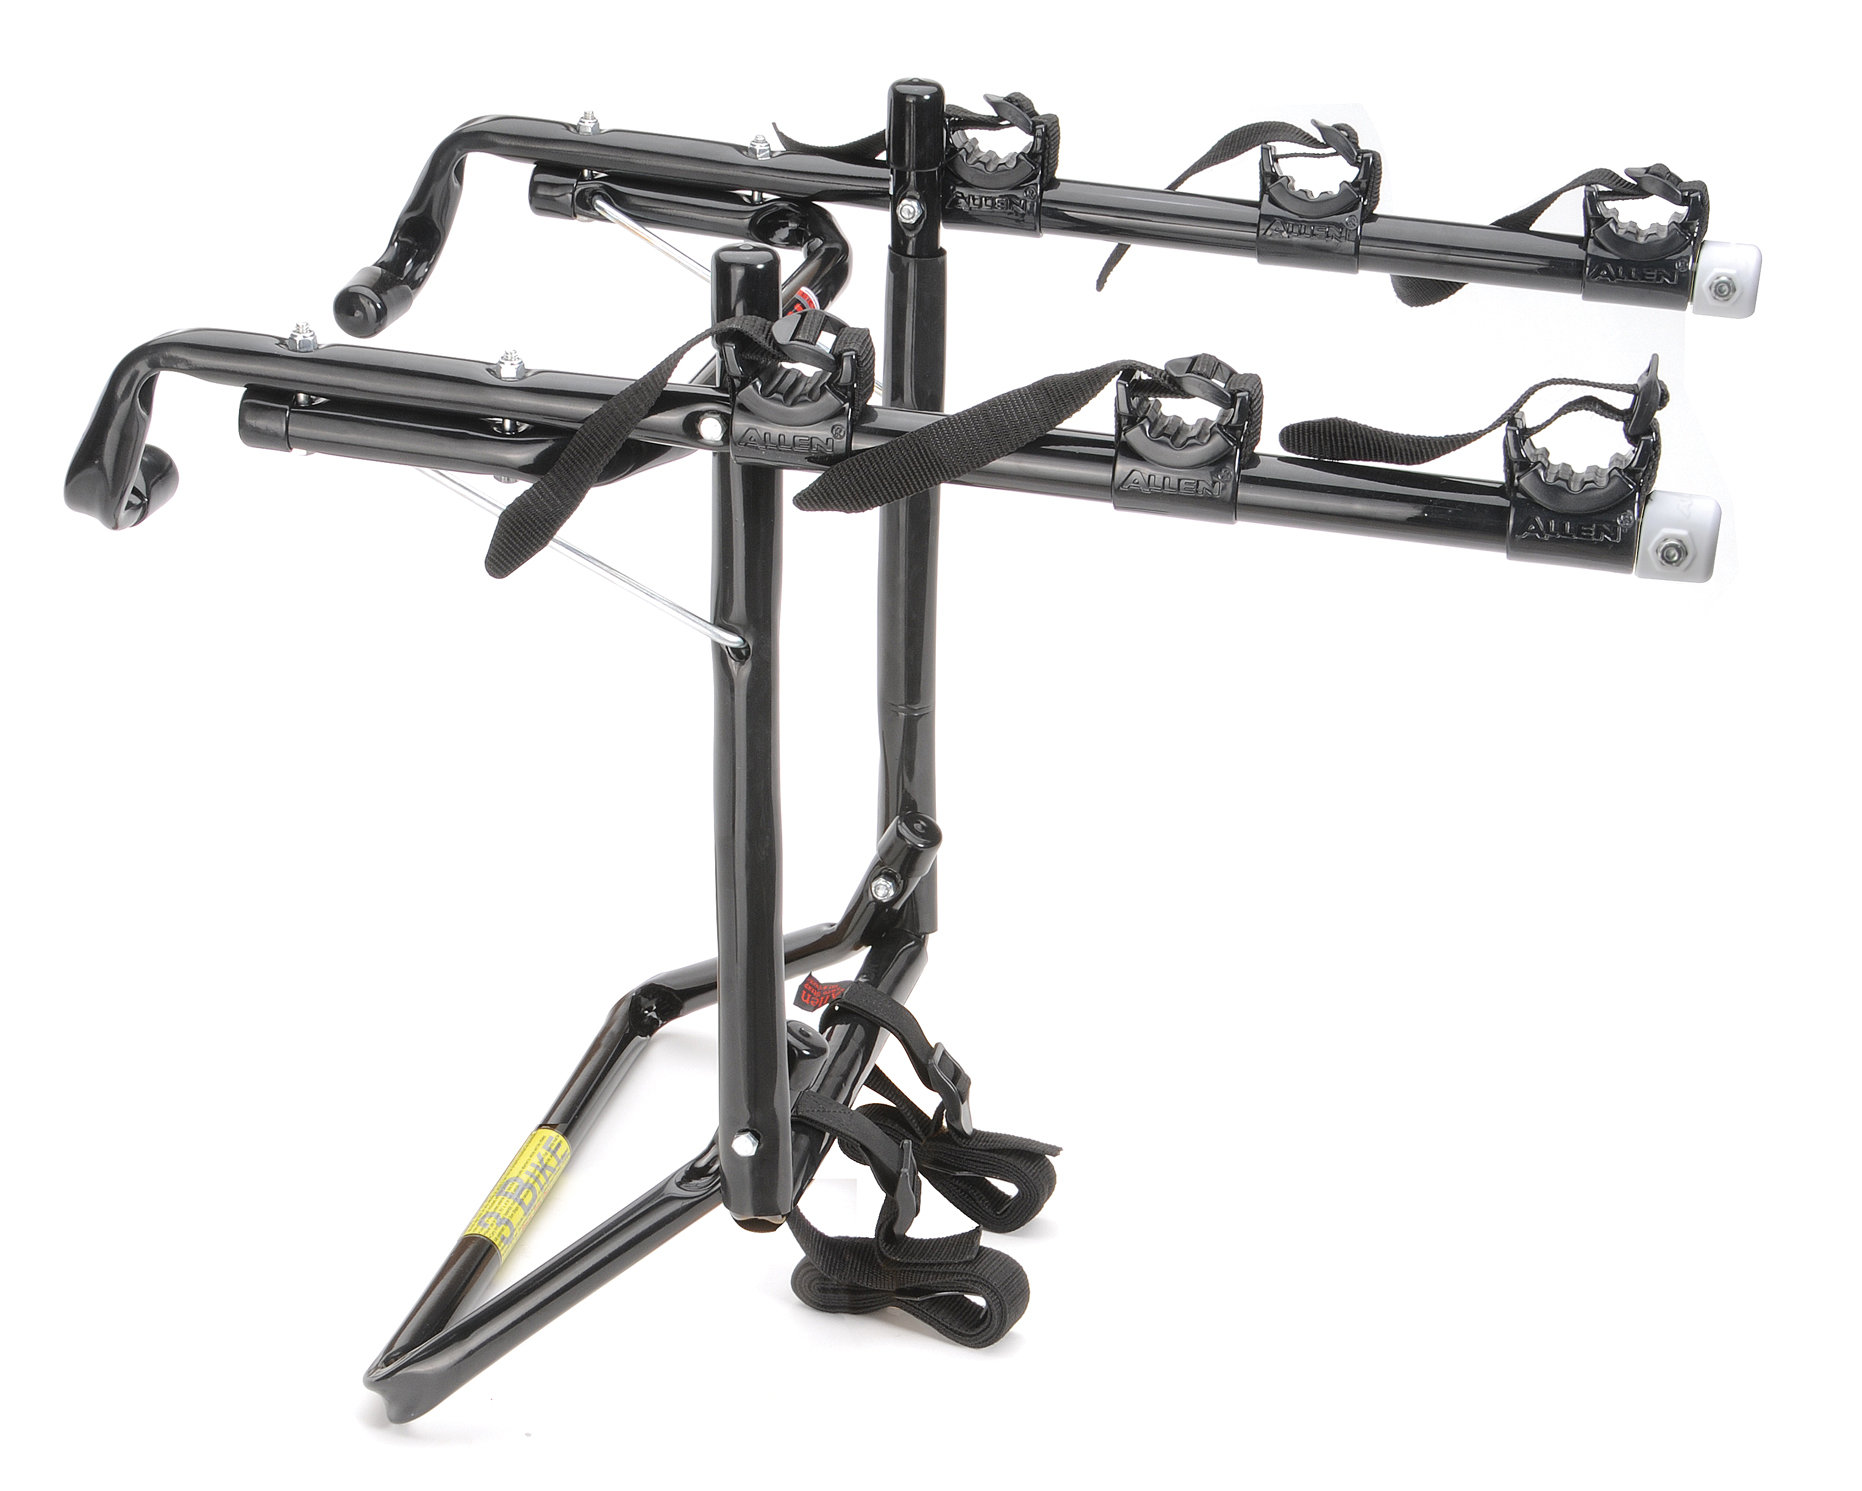 Allen Sports 303D/304ST Deluxe 3 Bike Carrier for Vehicles